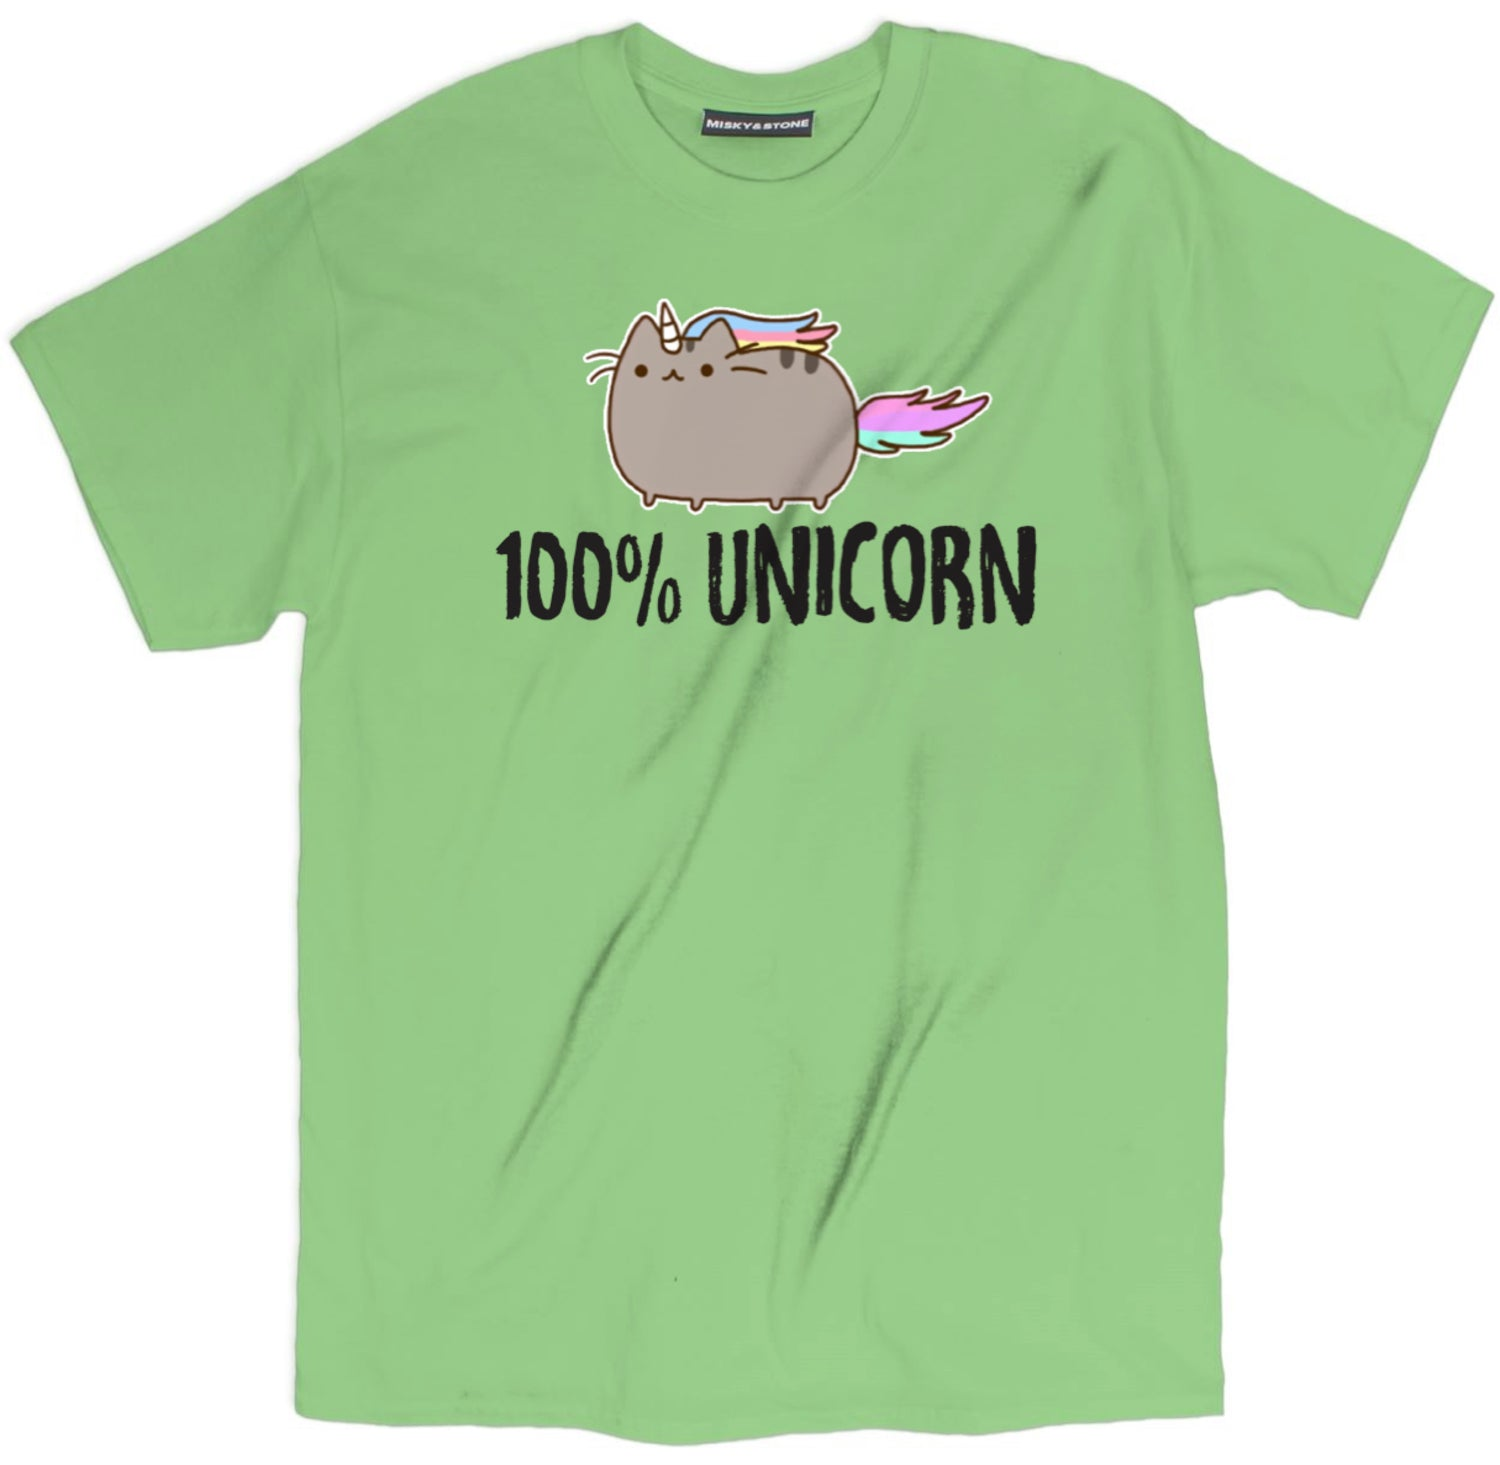 cat unicorn shirt, unicorn shirt, unicorn t shirt, t shirt unicorn, unicorn tee shirts, unicorn t shirts for adults, unicorn tee, unicorn shirts for adults, unicorn top, unicorn shirt unisex, rainbow unicorn shirt, unicorn apparel, funny unicorn t shirts, unicorn cat shirt, i am a unicorn t shirt, funny unicorn shirts, cute unicorn shirts, unicorn is my spirit animal,